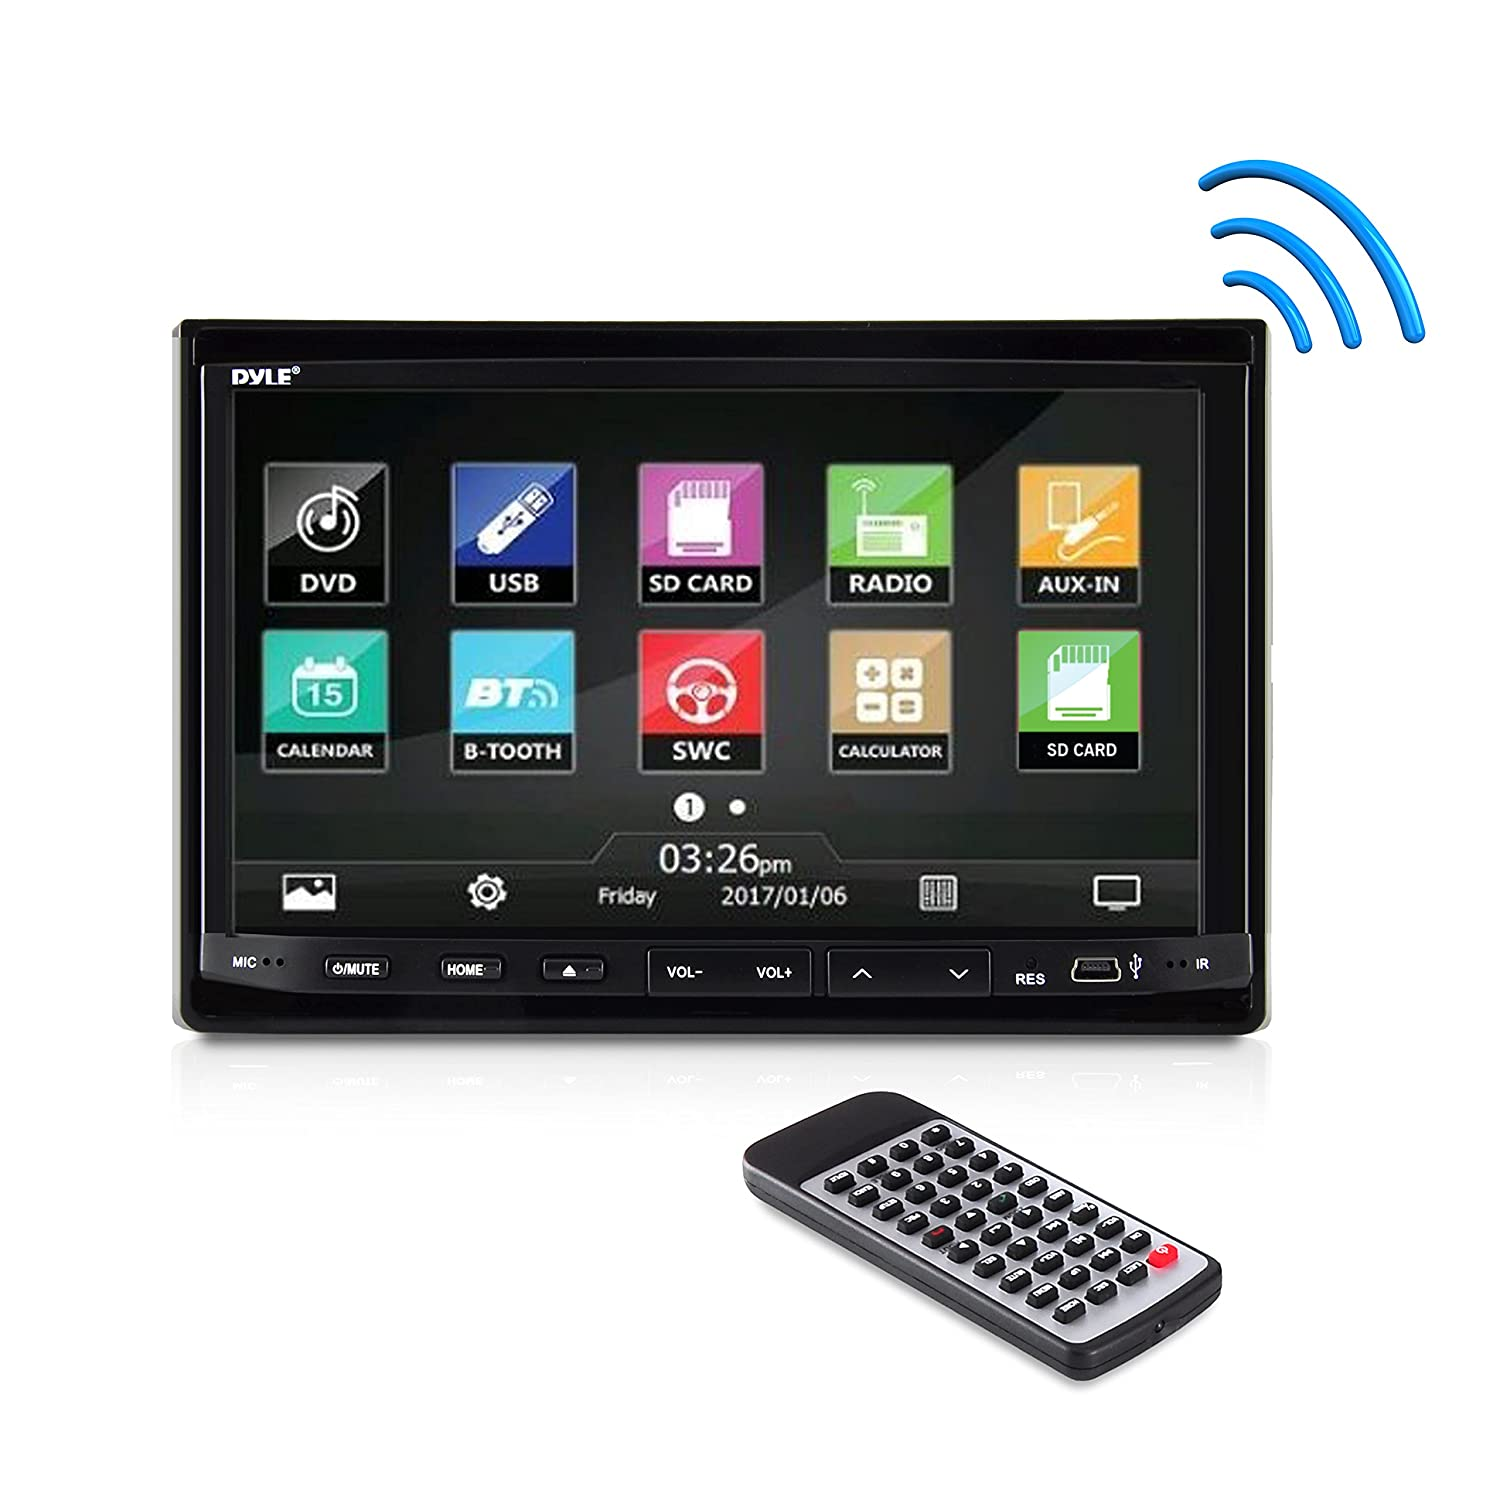 Amazon.com: Premium 7-Inch Double-DIN In-Dash Motorized Slide-Down  Touchscreen Car Stereo Receiver With Bluetooth - Video CD/DVD/MP3/MP4  Player, ...